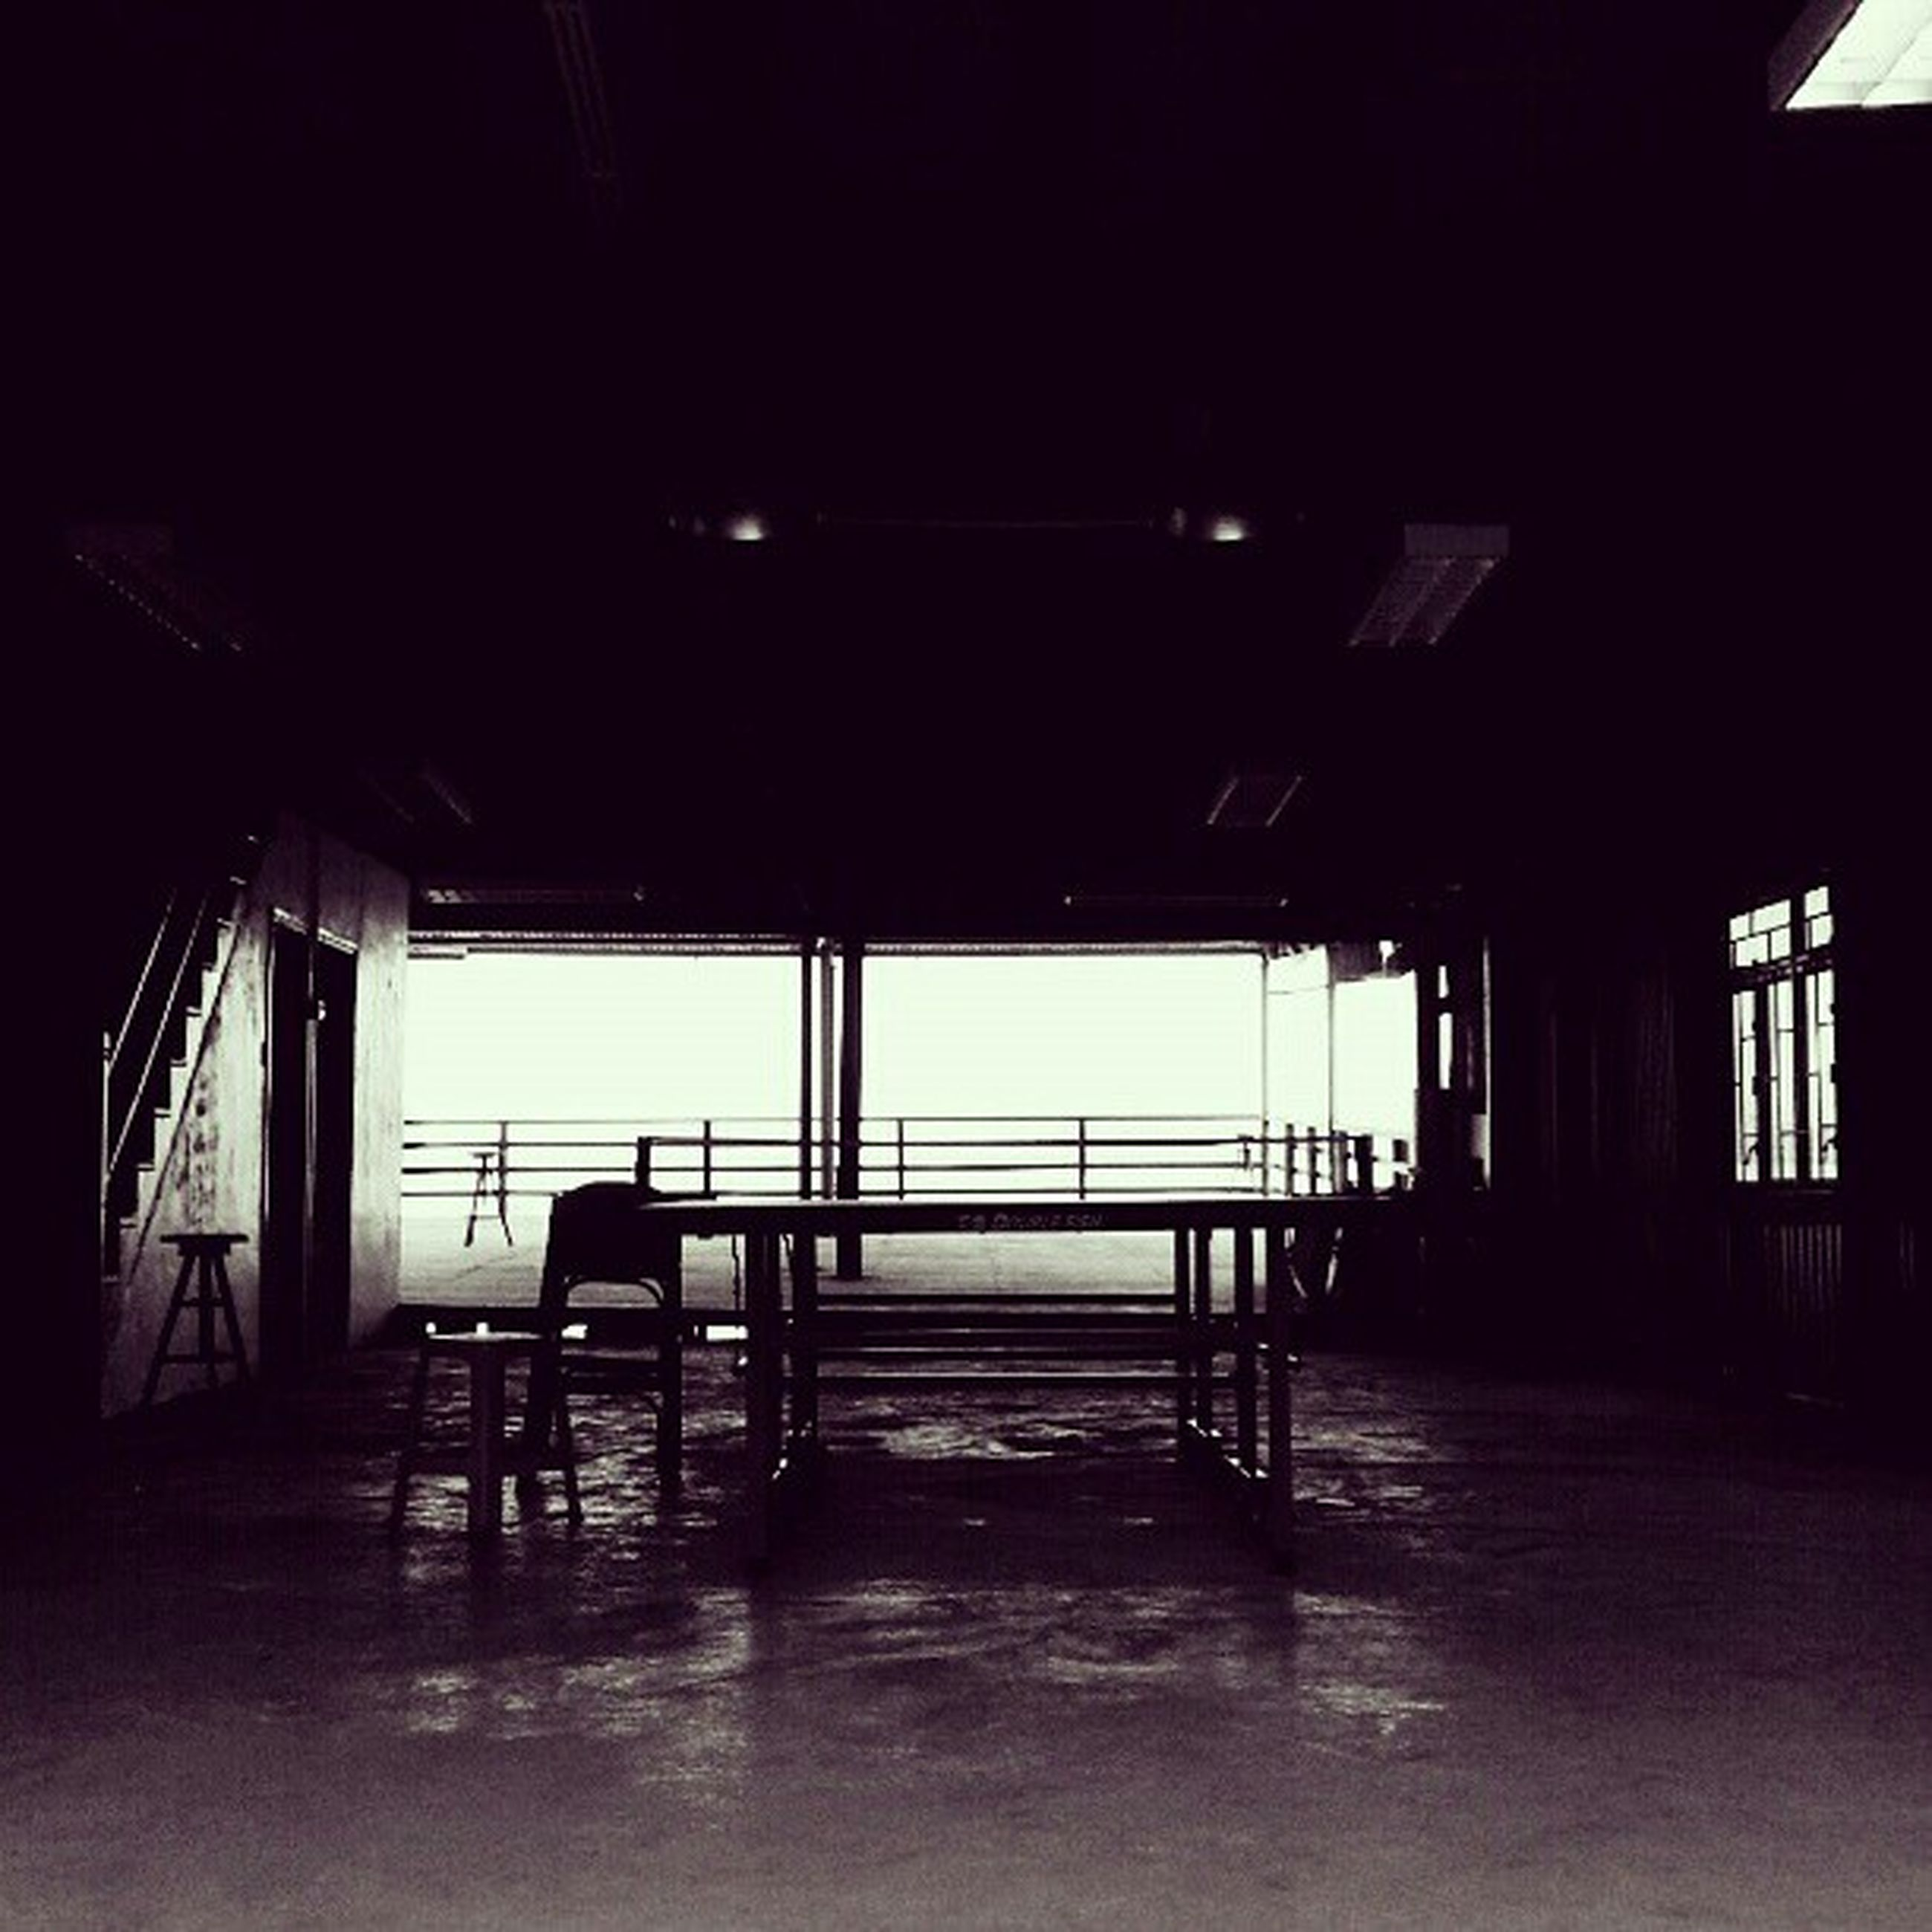 indoors, architecture, built structure, window, empty, flooring, absence, chair, sunlight, glass - material, house, door, corridor, illuminated, dark, interior, building exterior, reflection, table, ceiling